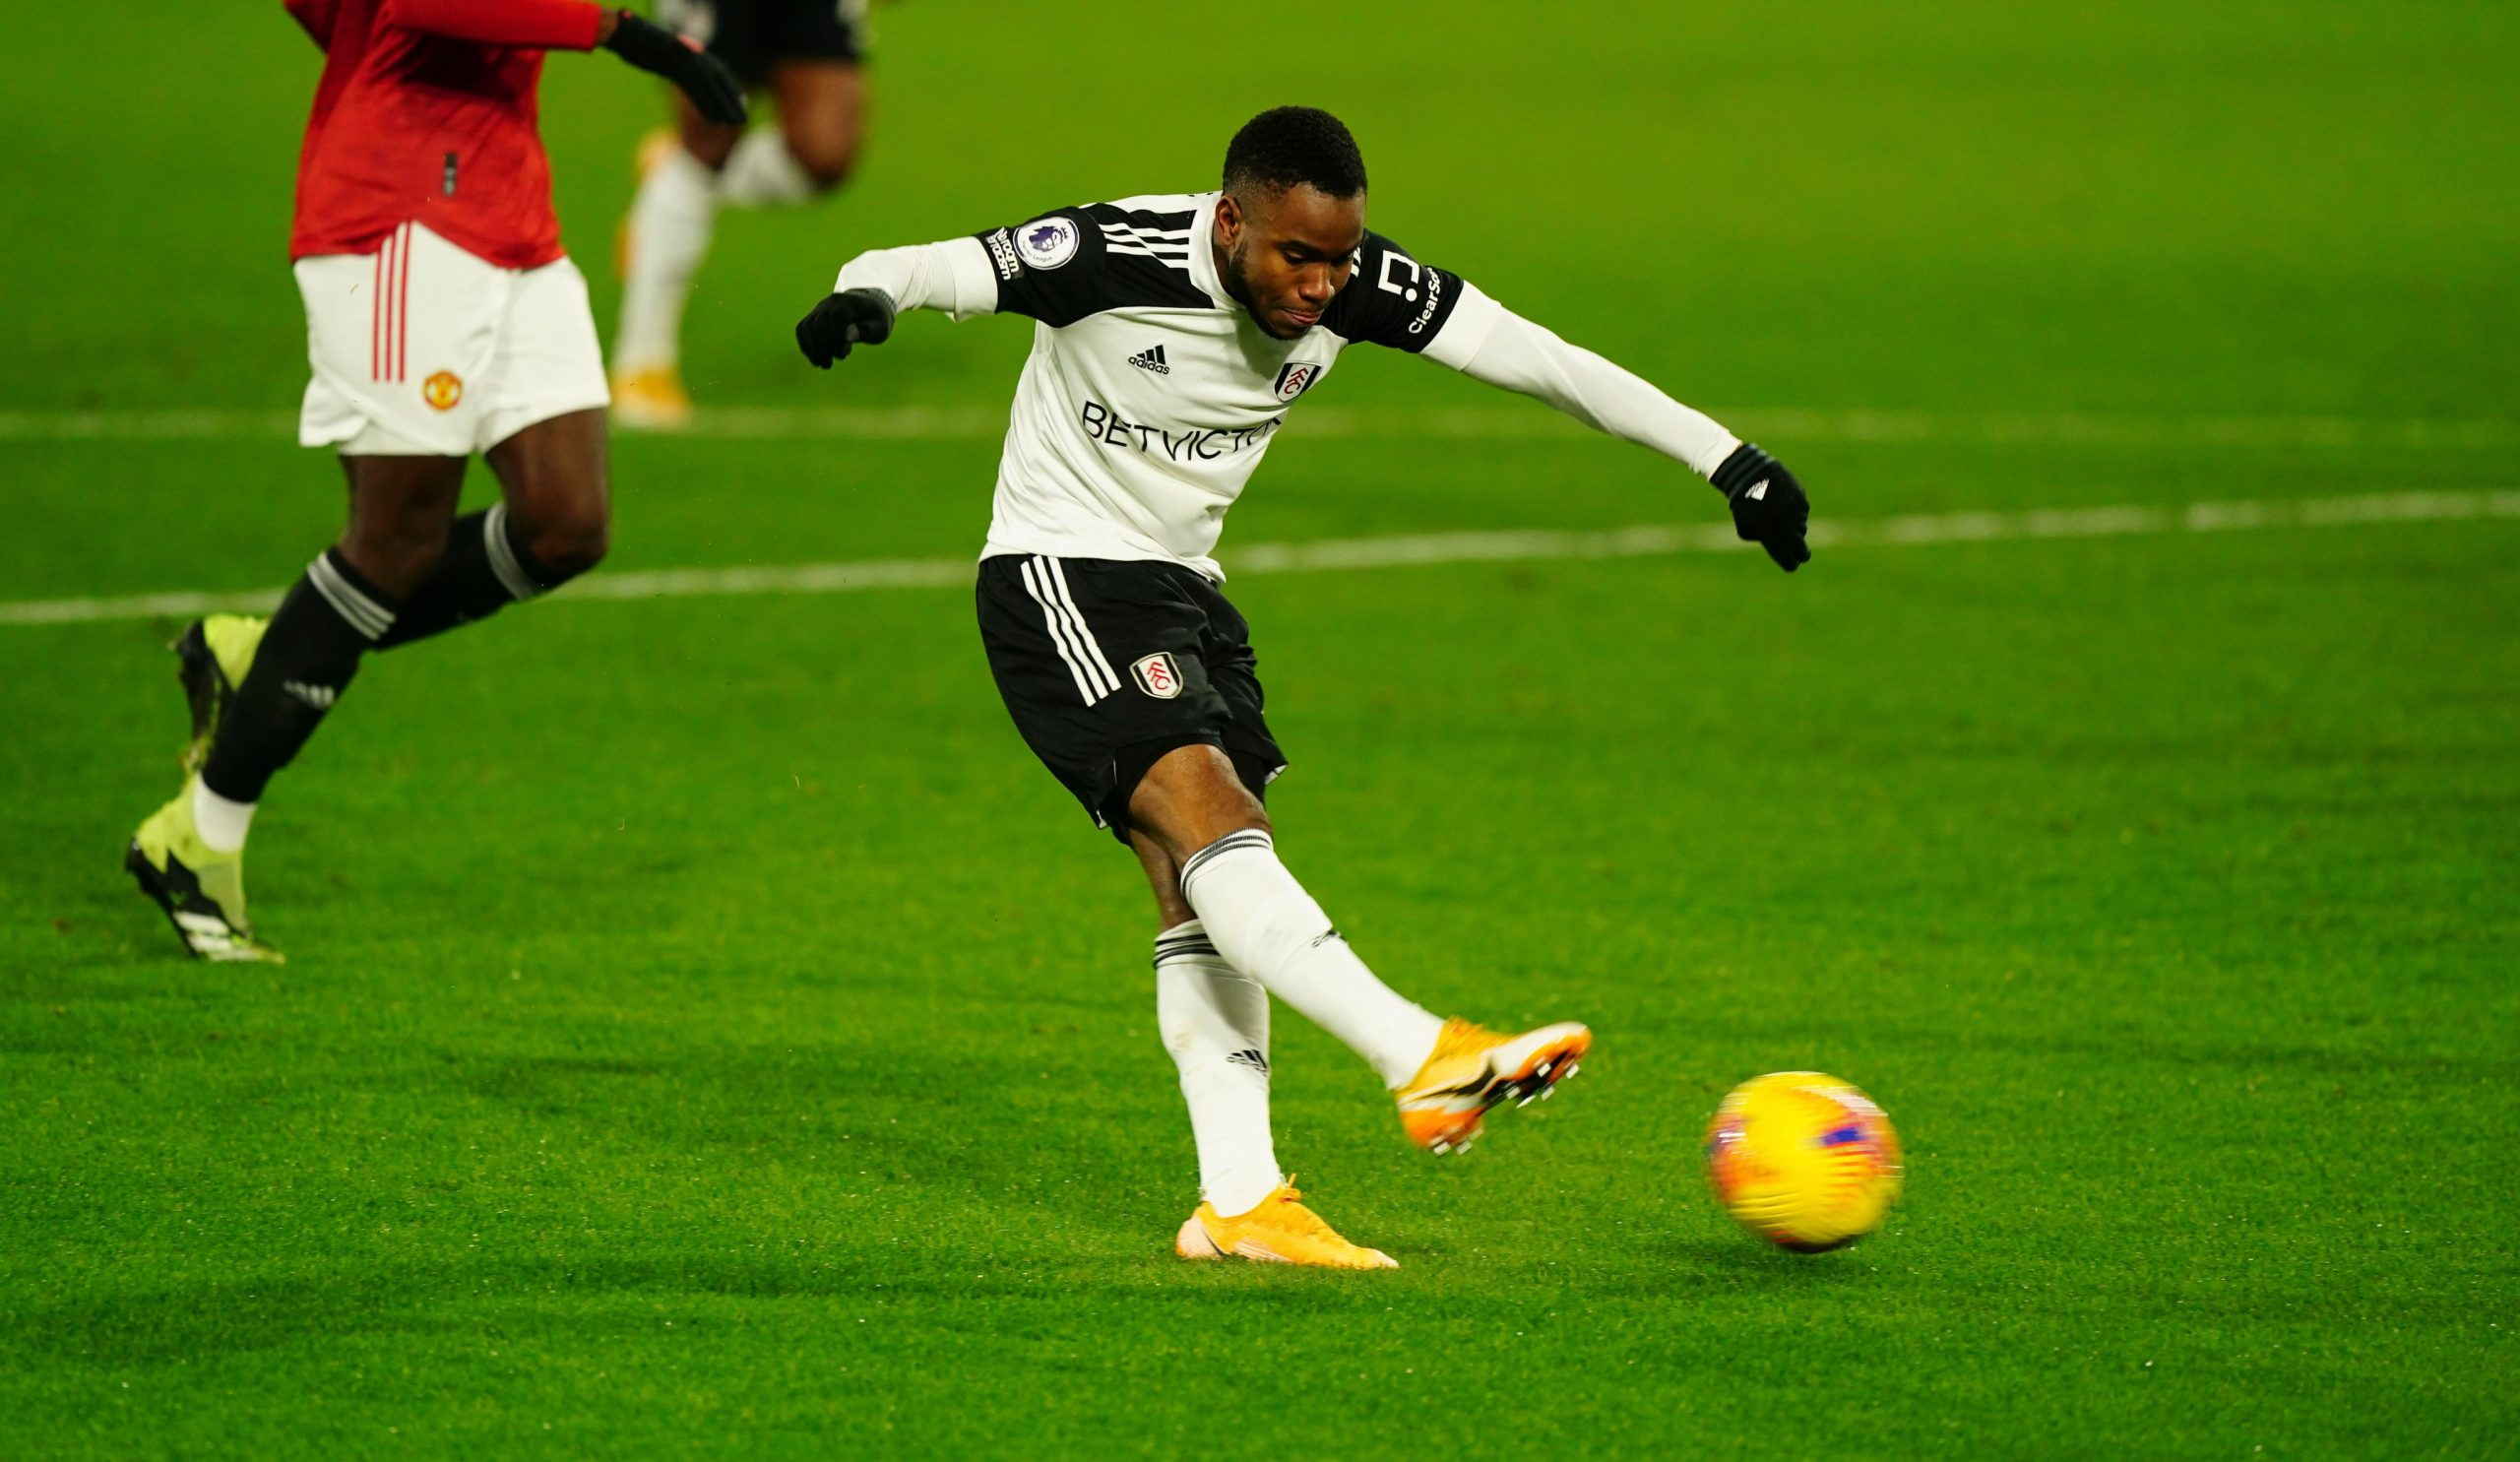 'I'm Enjoying My Life Here'- Lookman Thrilled To Play For Fulham